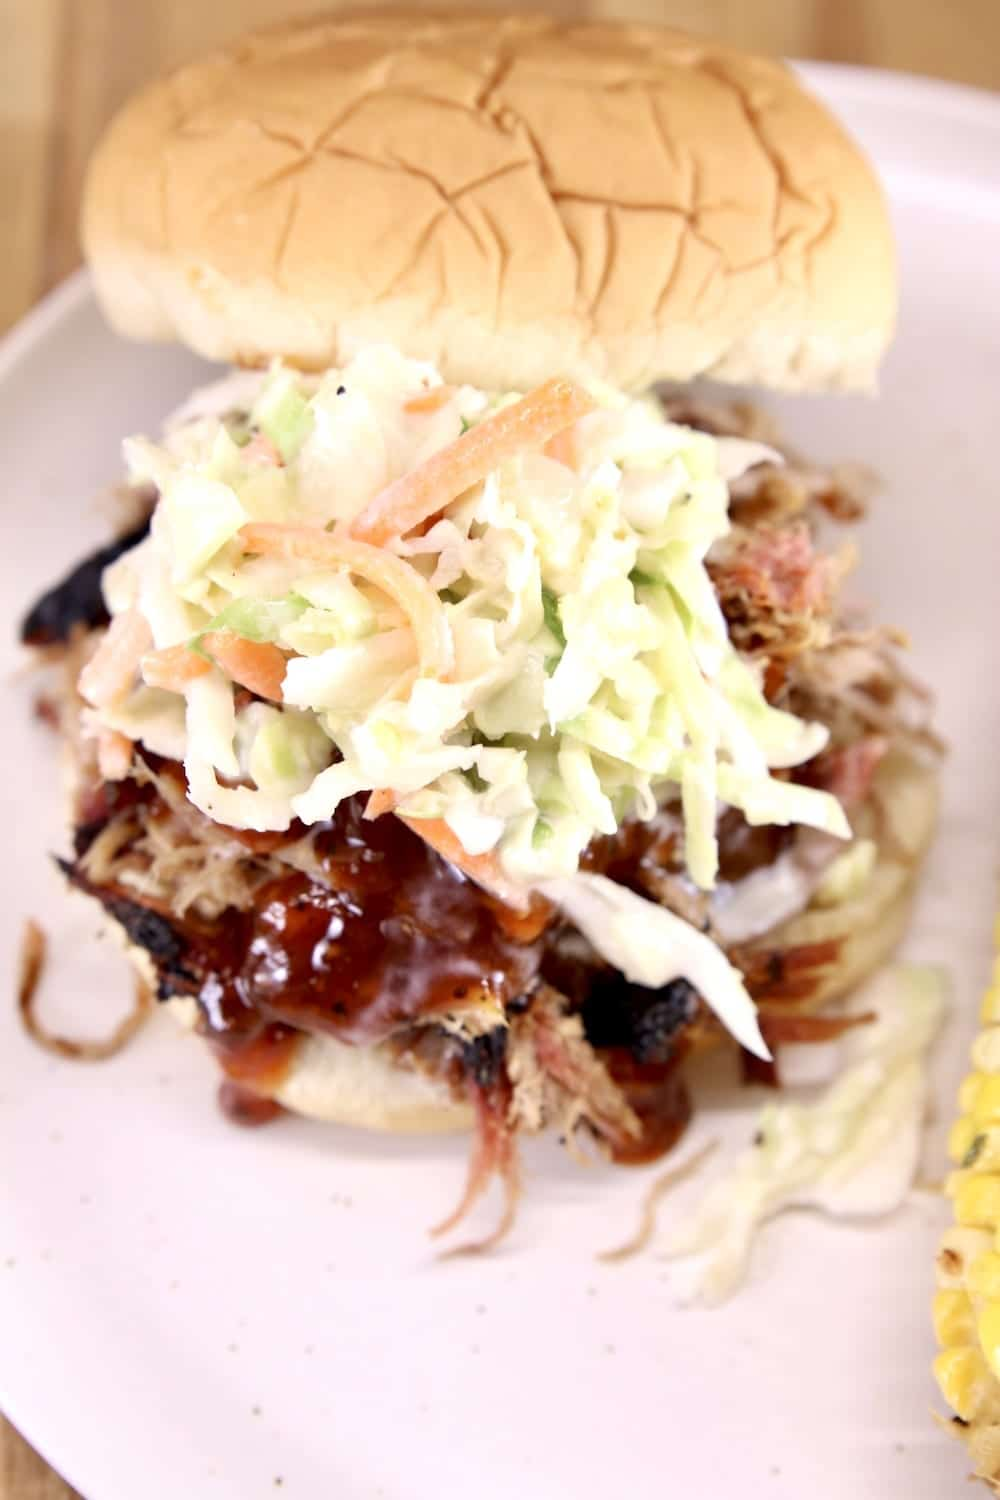 Pulled pork sandwich with bbq sauce and slaw